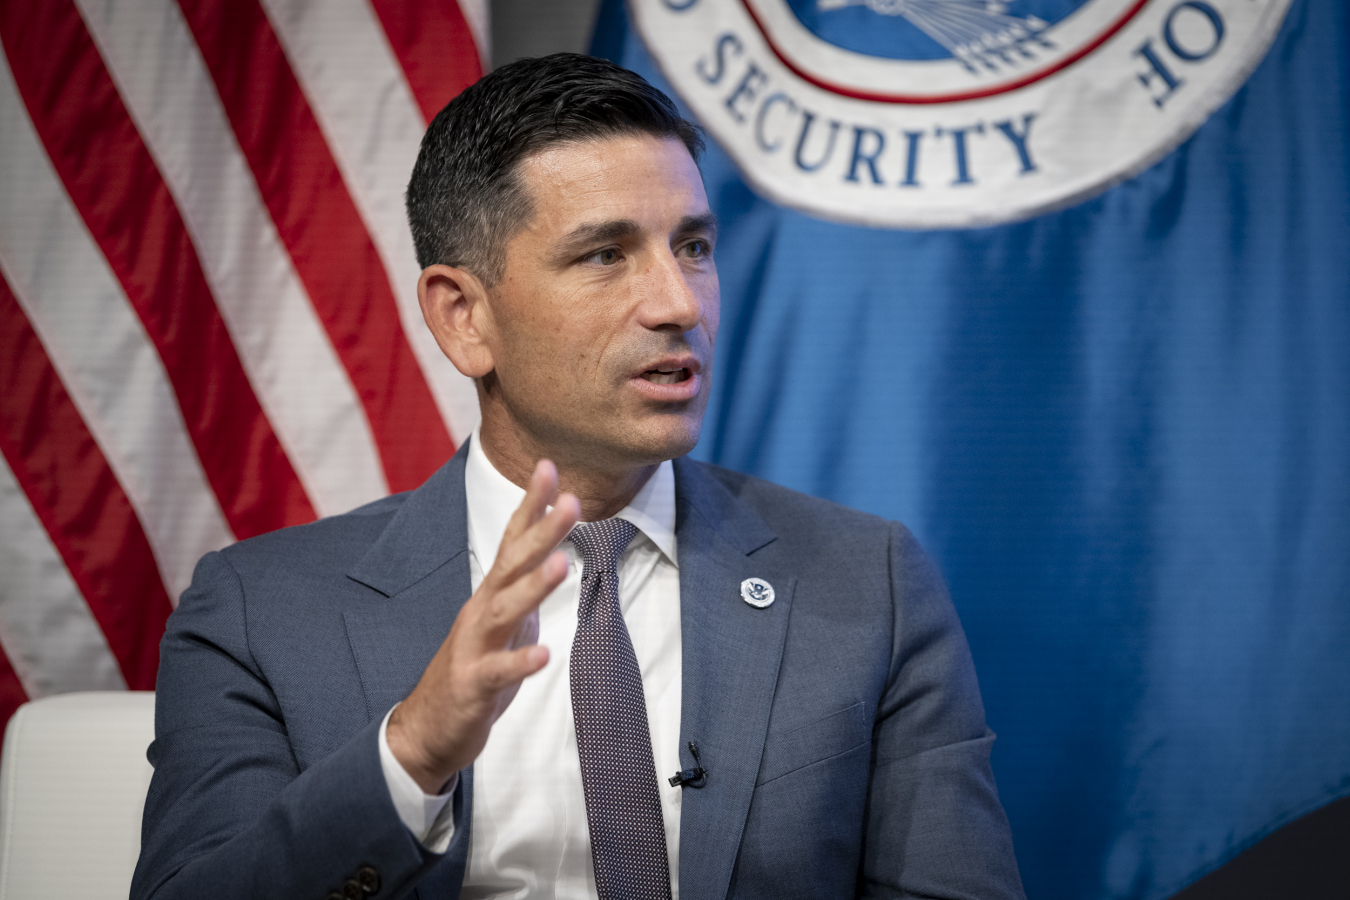 Acting Secretary Homeland Security, Chad Wolf Speaks With The Heritage Foundation 25 September 2020